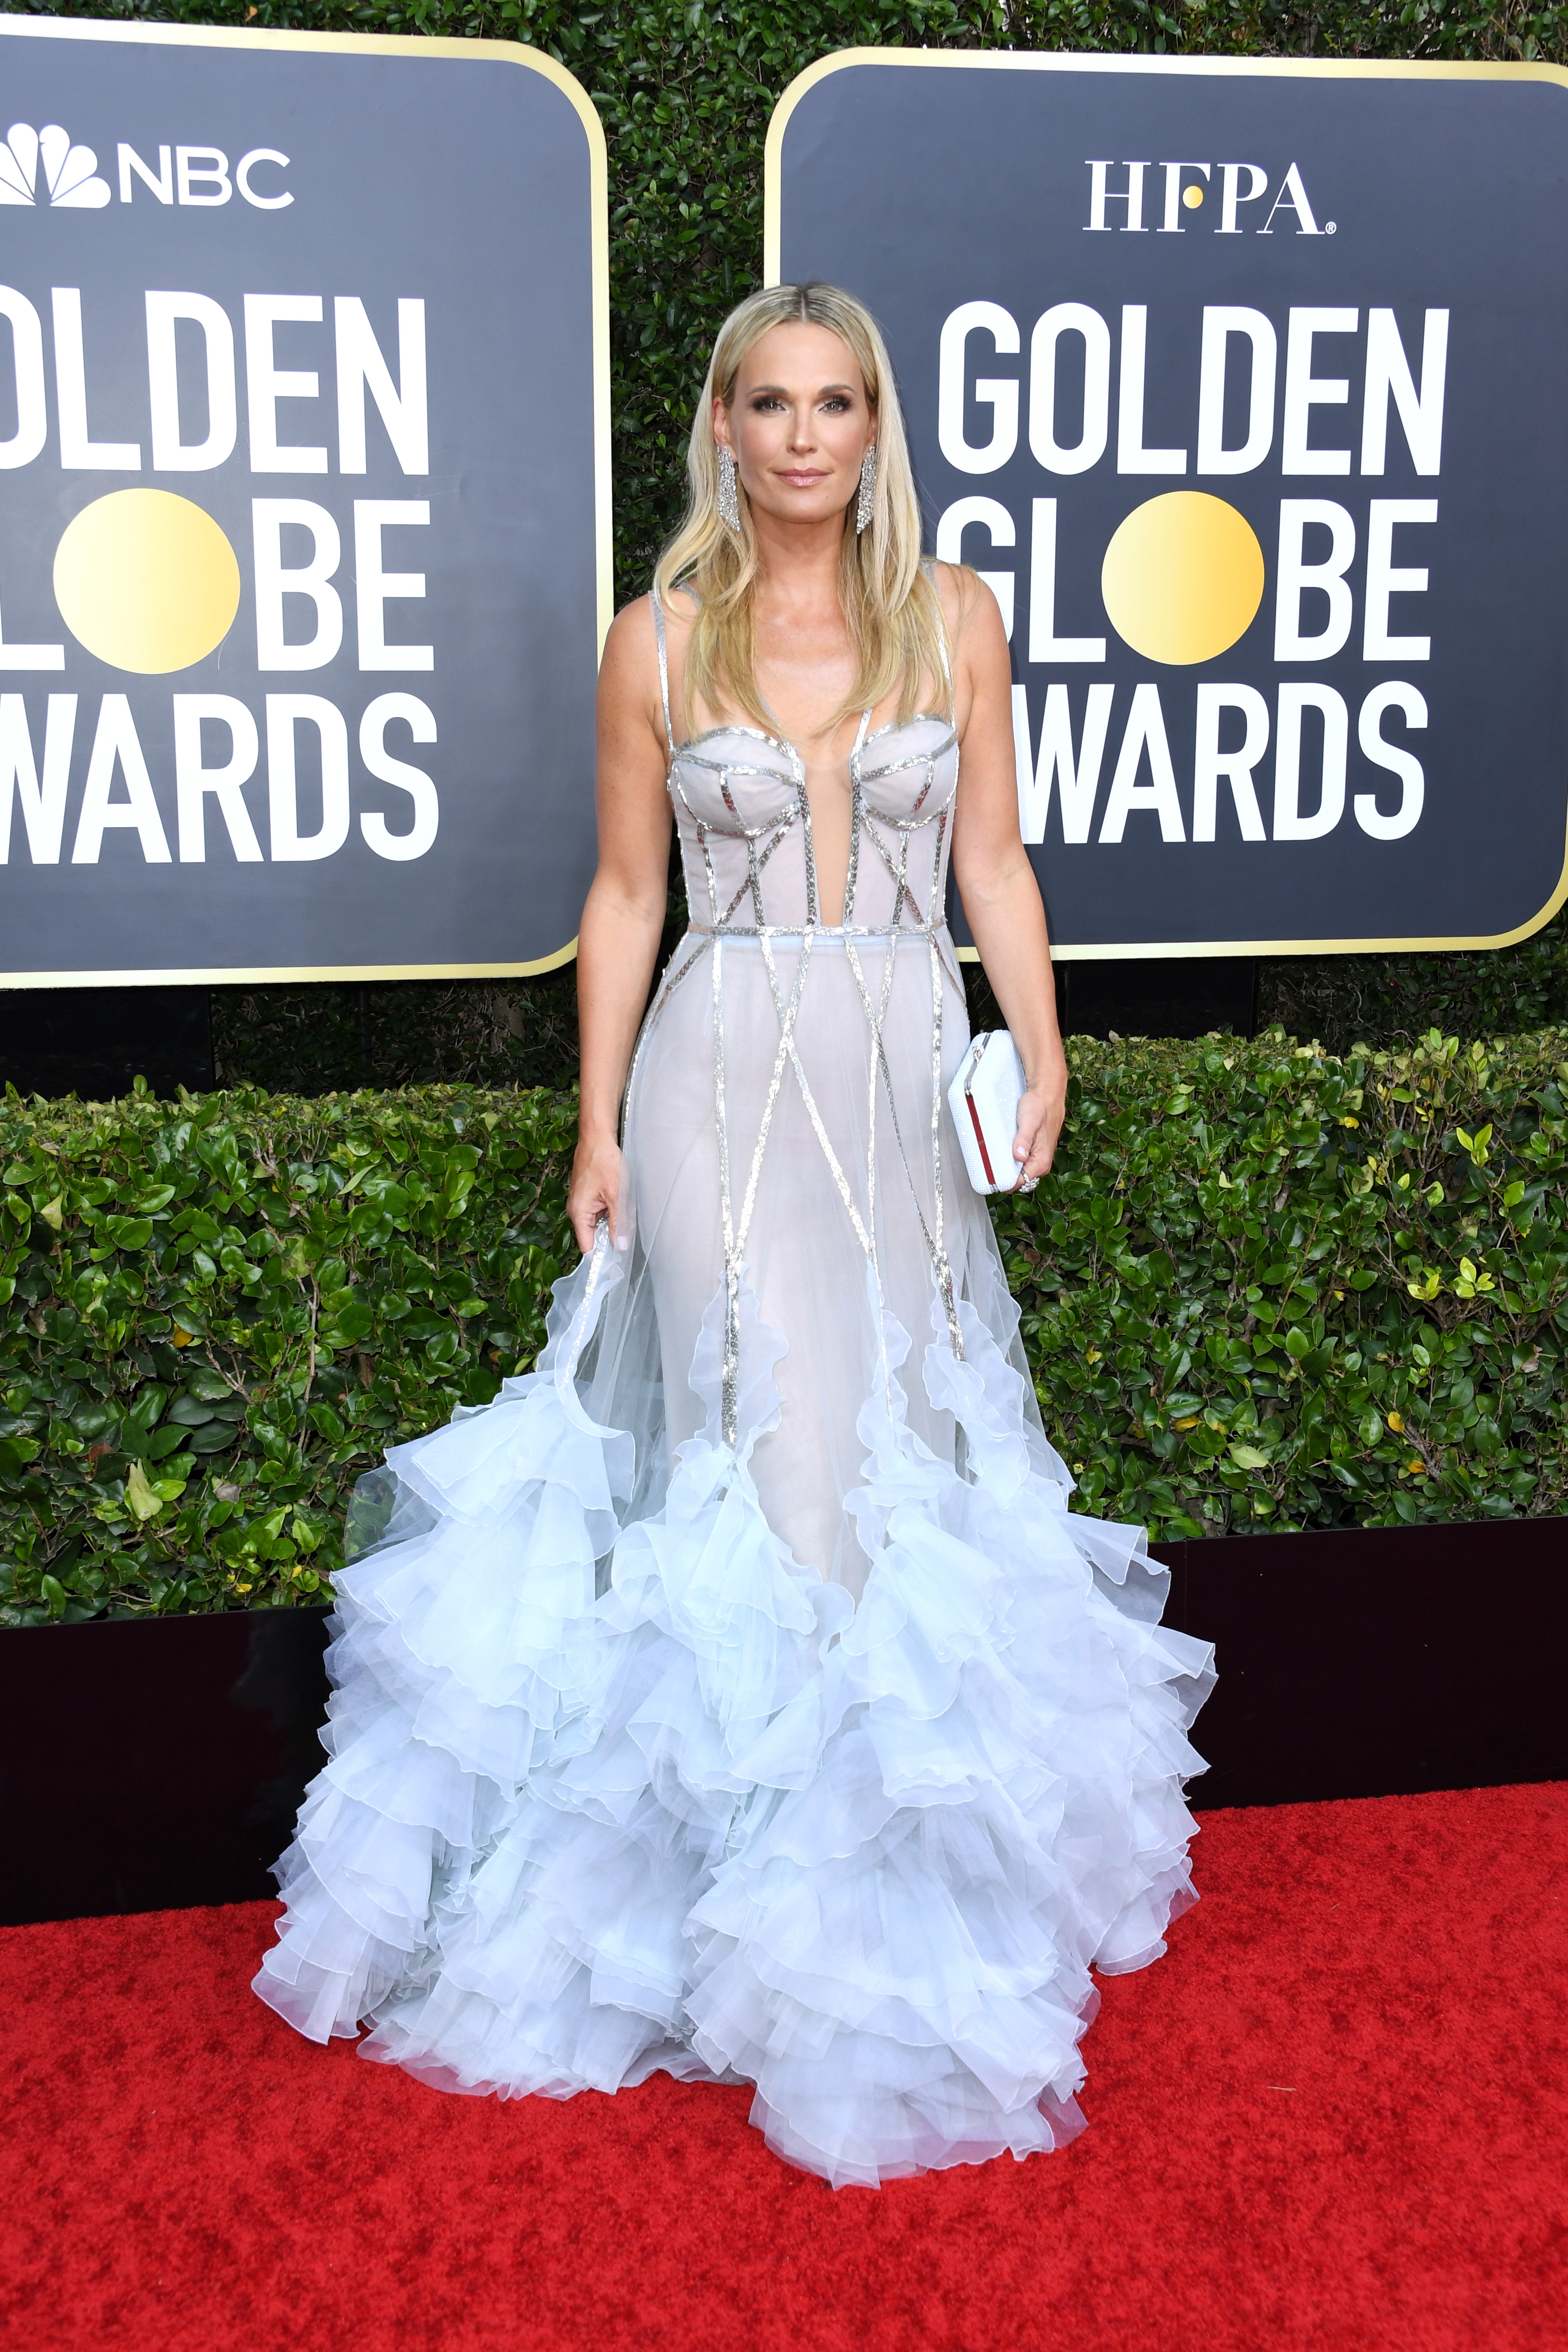 BEVERLY HILLS, CALIFORNIA - JANUARY 05: Molly Sims attends the 77th Annual Golden Globe Awards at The Beverly Hilton Hotel on January 05, 2020 in Beverly Hills, California. (Photo by Jon Kopaloff/Getty Images)